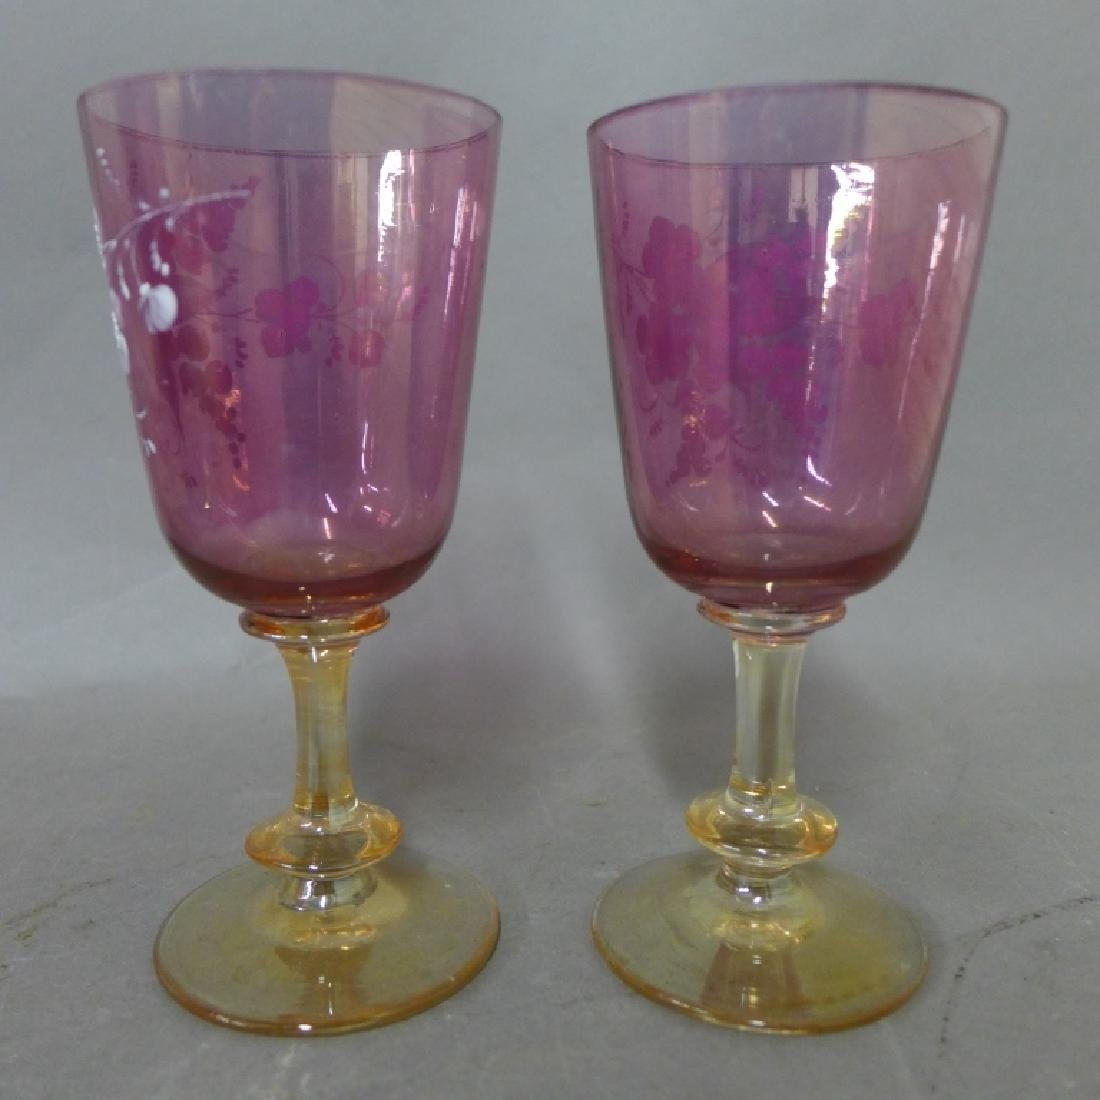 Amethyst Glass and Floral Decorated Decanter - 3